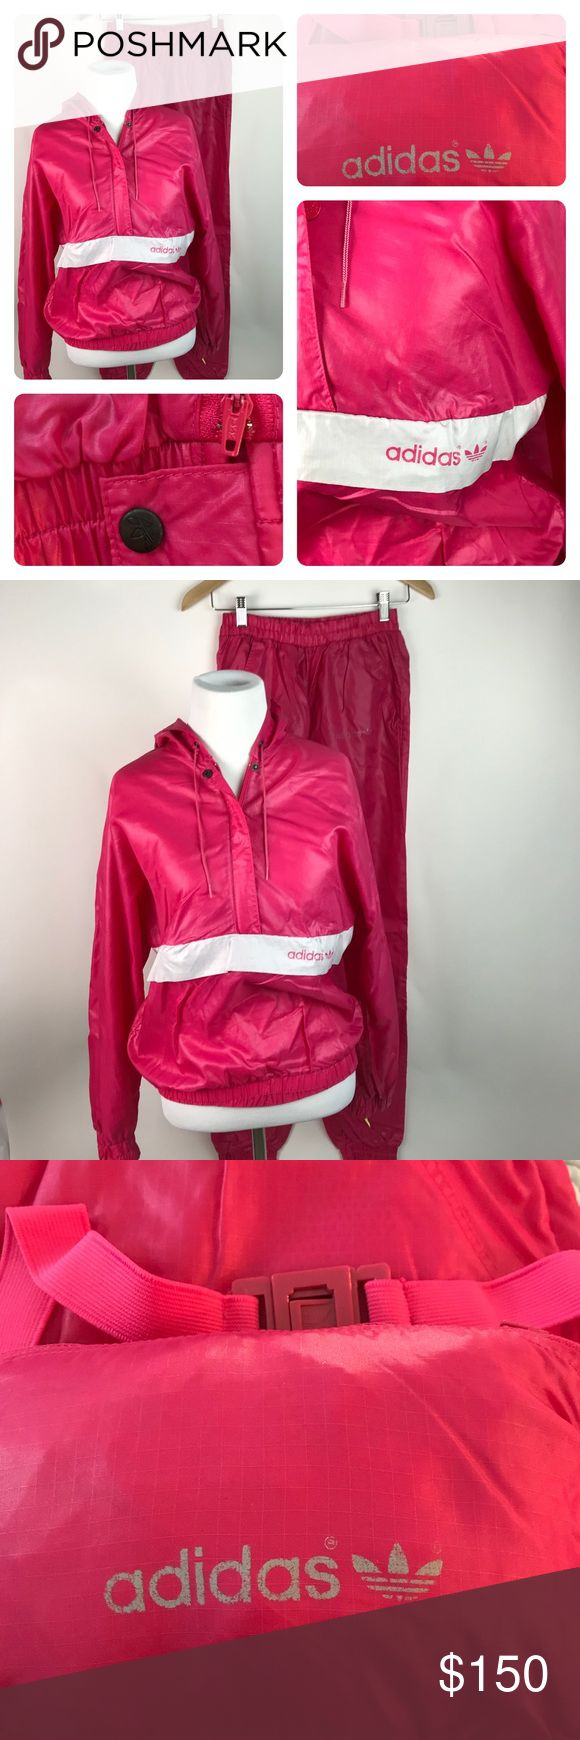 VINTAGE ADIDAS Women's Track Suit M AR57 EUC...minor fading of adidas logo on thigh of track pant only- all other logos intact. NO stains holes rips or pilling.  spectacular VINTAGE ADIDAS TRACKSUIT for women! This listing includes the popover hooded windbreaker which folds into and out of a Belted fanny pack that fastens around waist for travel, etc. when Jacket is in use, the fanny pack and strap nestled into the jacket's front pocket. The pants feature a traditional elastic waistband with…